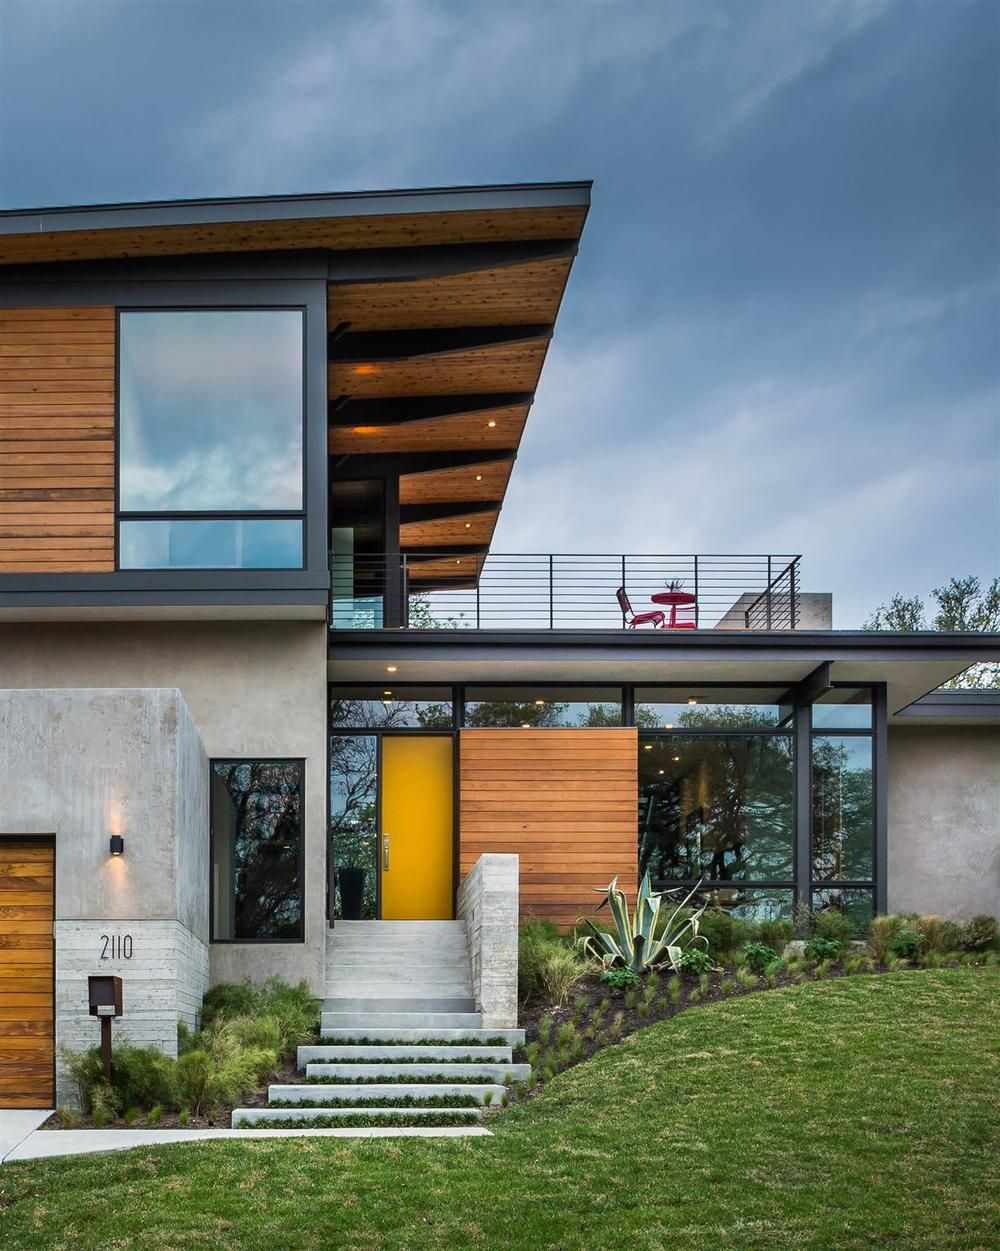 Exterior House Designs Exterior Modern With Concrete Patio Flat Roof: Really Like The Concrete And Wood Combo Exterior. Also Really Love The Second Floor Patio